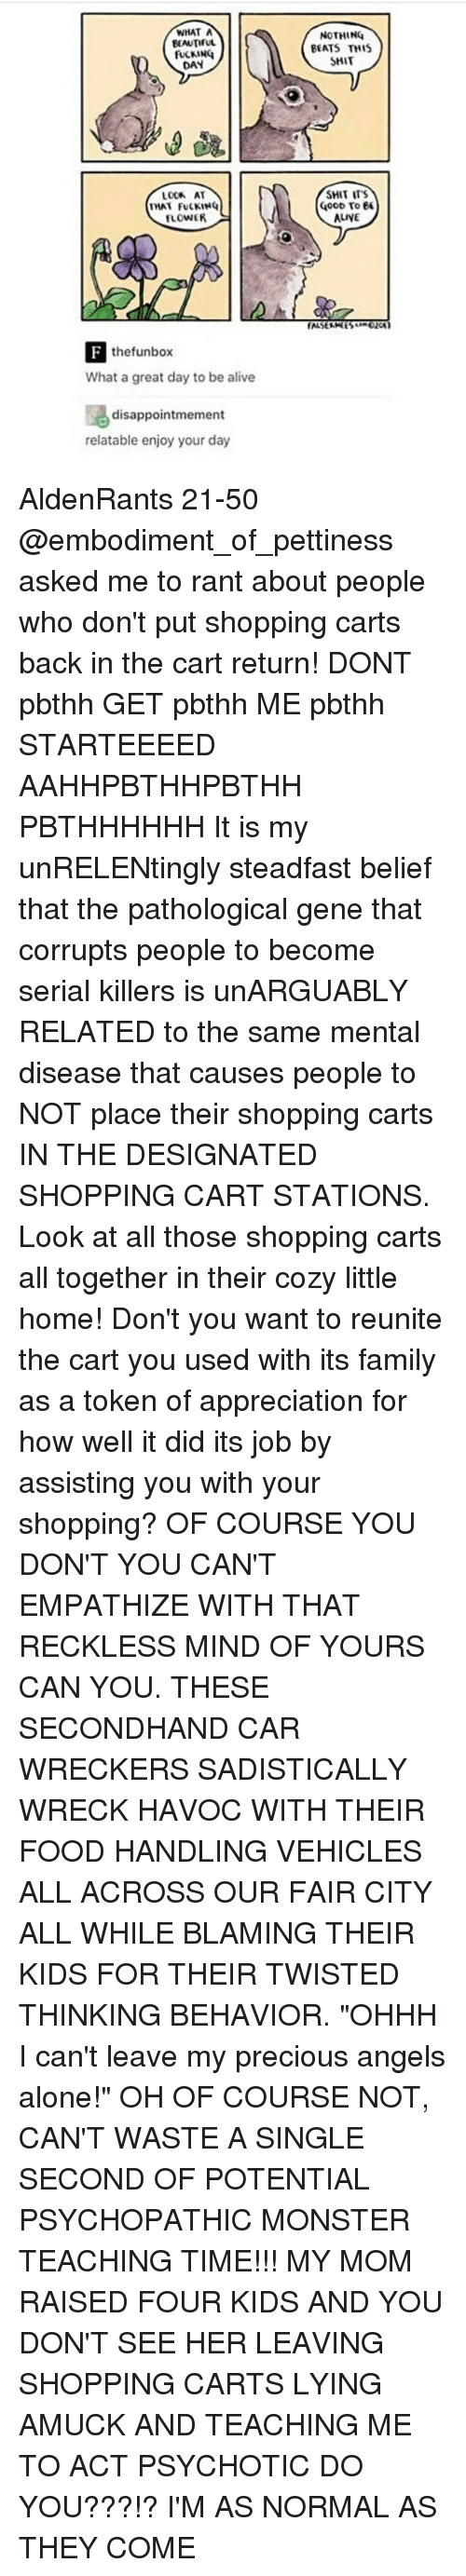 """Alive, Being Alone, and Beautiful: WHAT A  BEAUTIFUL  DAN  THAT FUCKING  FLOWER  the funbox  What a great day to be alive  disappointmement  relatable enjoy your day  NOTHING  BEATS THIS  SHIT  SHIT ITS  OOD To  EE  ALINE AldenRants 21-50 @embodiment_of_pettiness asked me to rant about people who don't put shopping carts back in the cart return! DONT pbthh GET pbthh ME pbthh STARTEEEED AAHHPBTHHPBTHH PBTHHHHHH It is my unRELENtingly steadfast belief that the pathological gene that corrupts people to become serial killers is unARGUABLY RELATED to the same mental disease that causes people to NOT place their shopping carts IN THE DESIGNATED SHOPPING CART STATIONS. Look at all those shopping carts all together in their cozy little home! Don't you want to reunite the cart you used with its family as a token of appreciation for how well it did its job by assisting you with your shopping? OF COURSE YOU DON'T YOU CAN'T EMPATHIZE WITH THAT RECKLESS MIND OF YOURS CAN YOU. THESE SECONDHAND CAR WRECKERS SADISTICALLY WRECK HAVOC WITH THEIR FOOD HANDLING VEHICLES ALL ACROSS OUR FAIR CITY ALL WHILE BLAMING THEIR KIDS FOR THEIR TWISTED THINKING BEHAVIOR. """"OHHH I can't leave my precious angels alone!"""" OH OF COURSE NOT, CAN'T WASTE A SINGLE SECOND OF POTENTIAL PSYCHOPATHIC MONSTER TEACHING TIME!!! MY MOM RAISED FOUR KIDS AND YOU DON'T SEE HER LEAVING SHOPPING CARTS LYING AMUCK AND TEACHING ME TO ACT PSYCHOTIC DO YOU???!? I'M AS NORMAL AS THEY COME"""